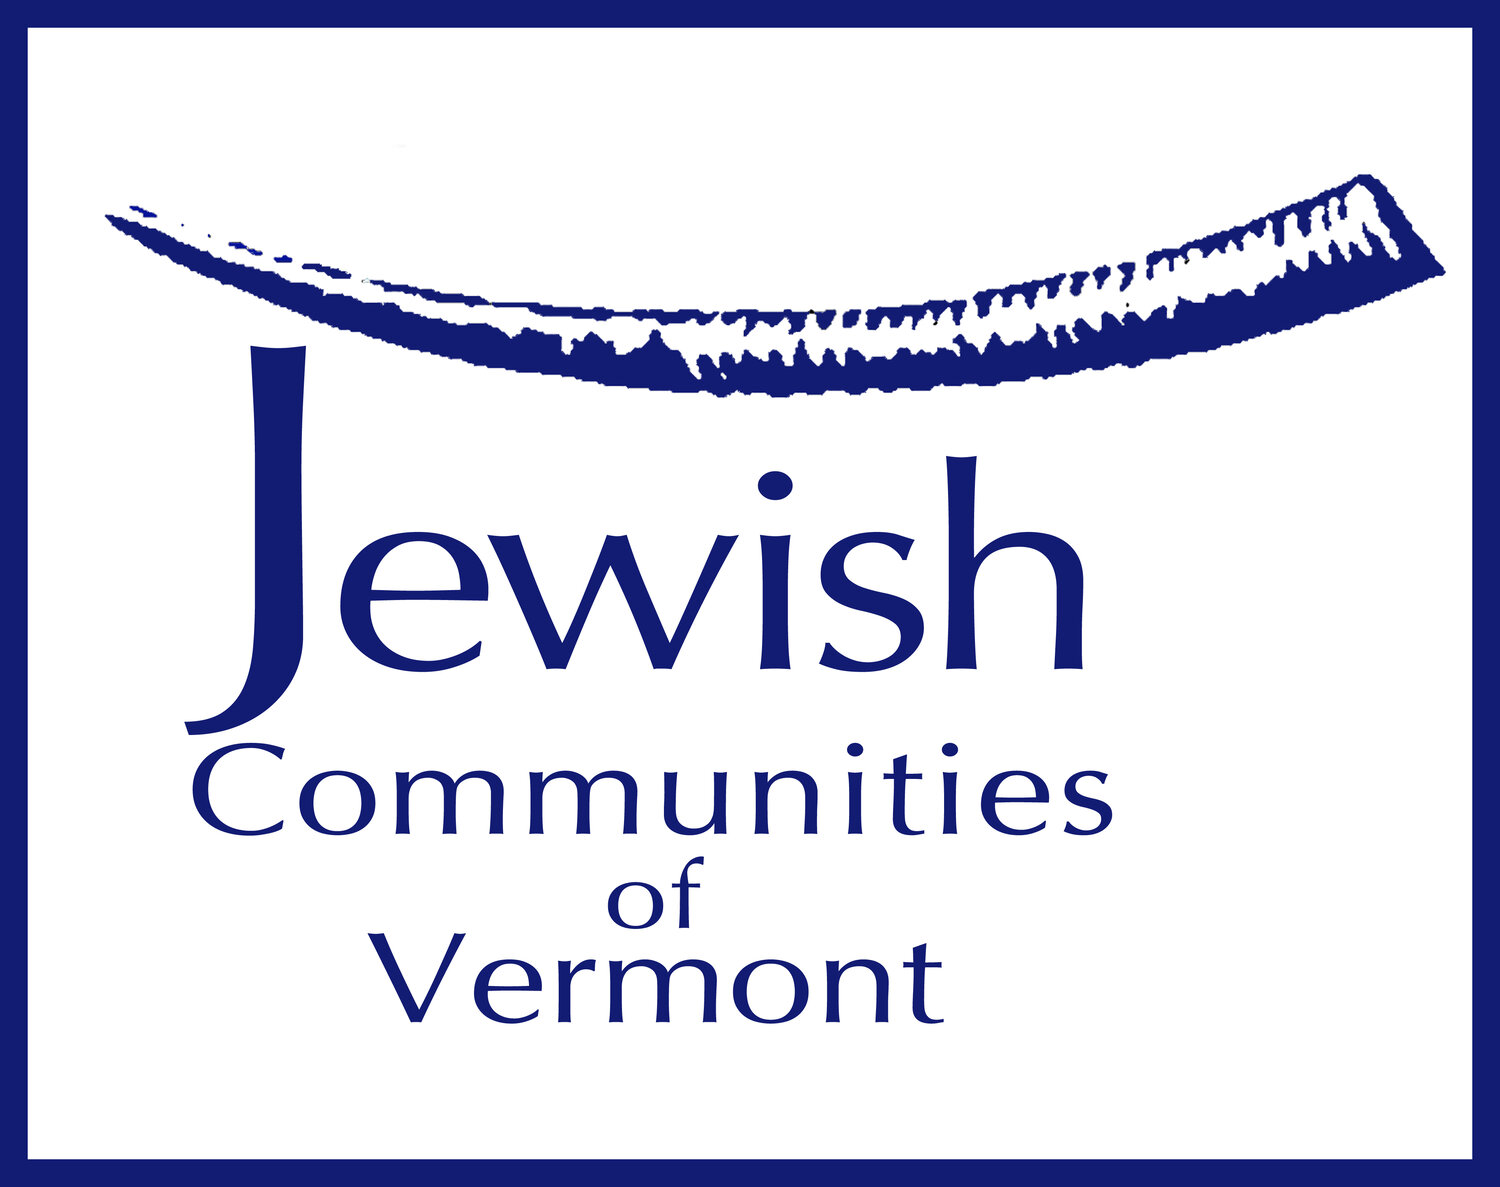 Jewish Communities of Vermont